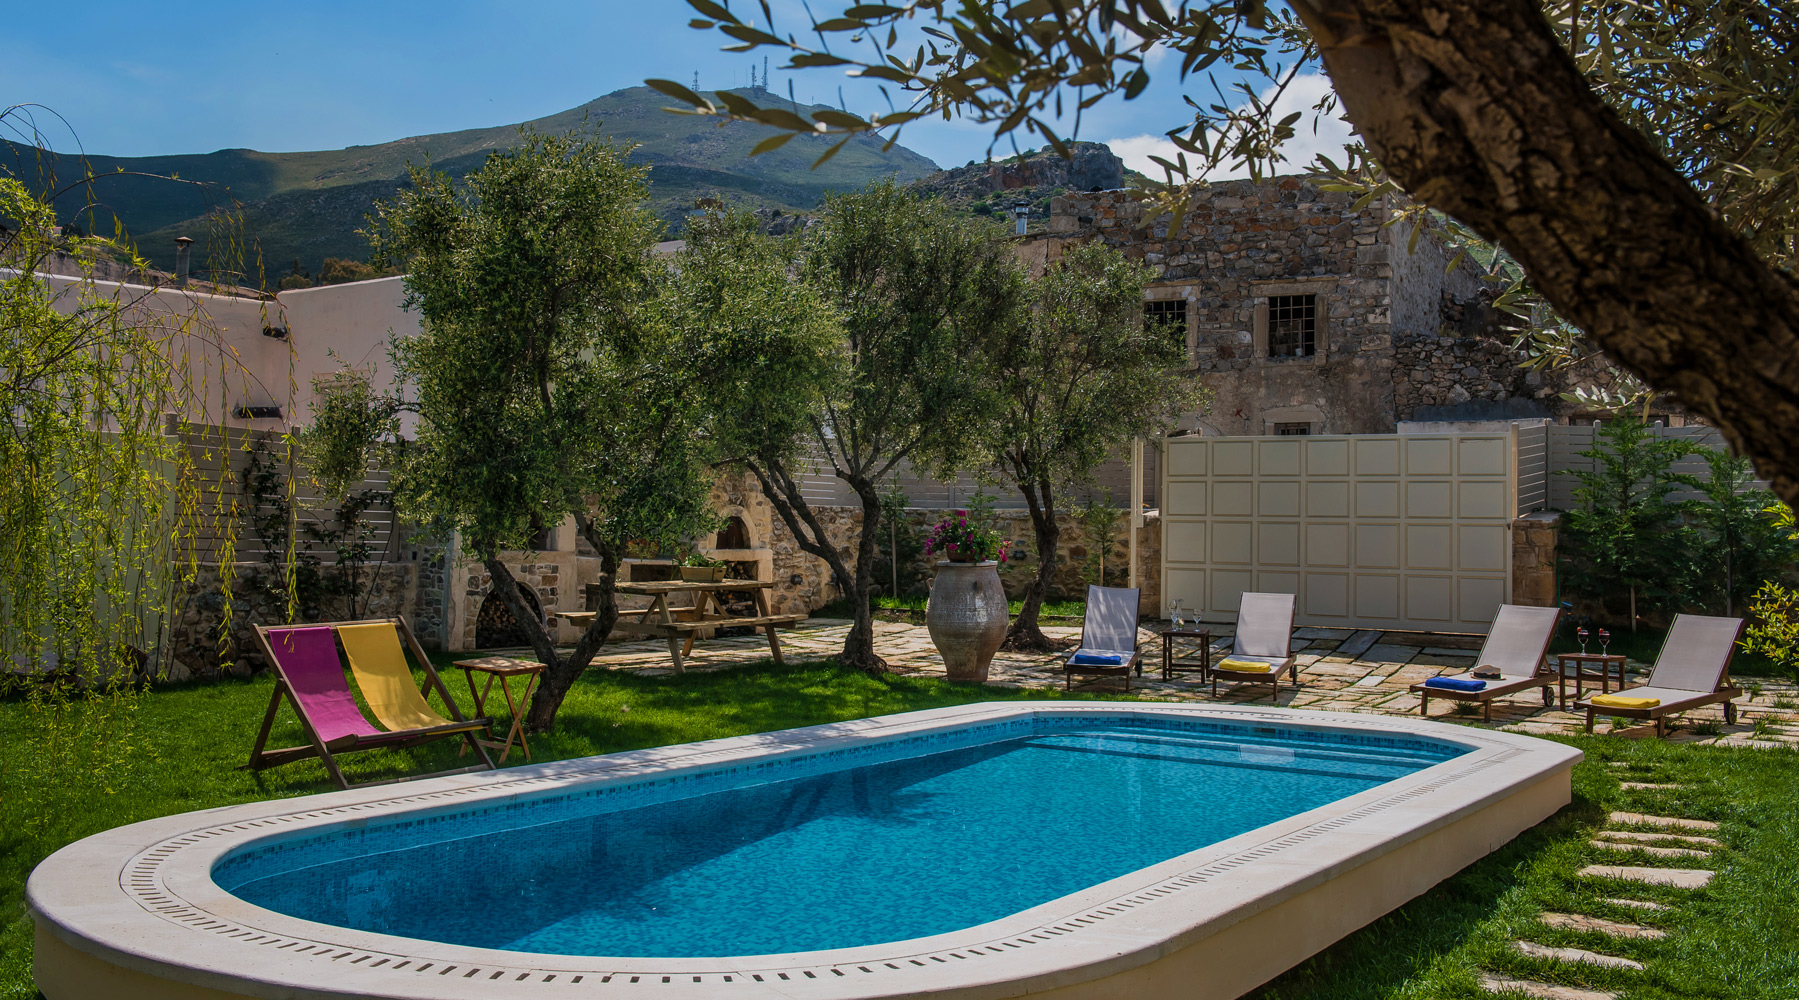 South_Crete_Villa_arismari_pompia_crete_05